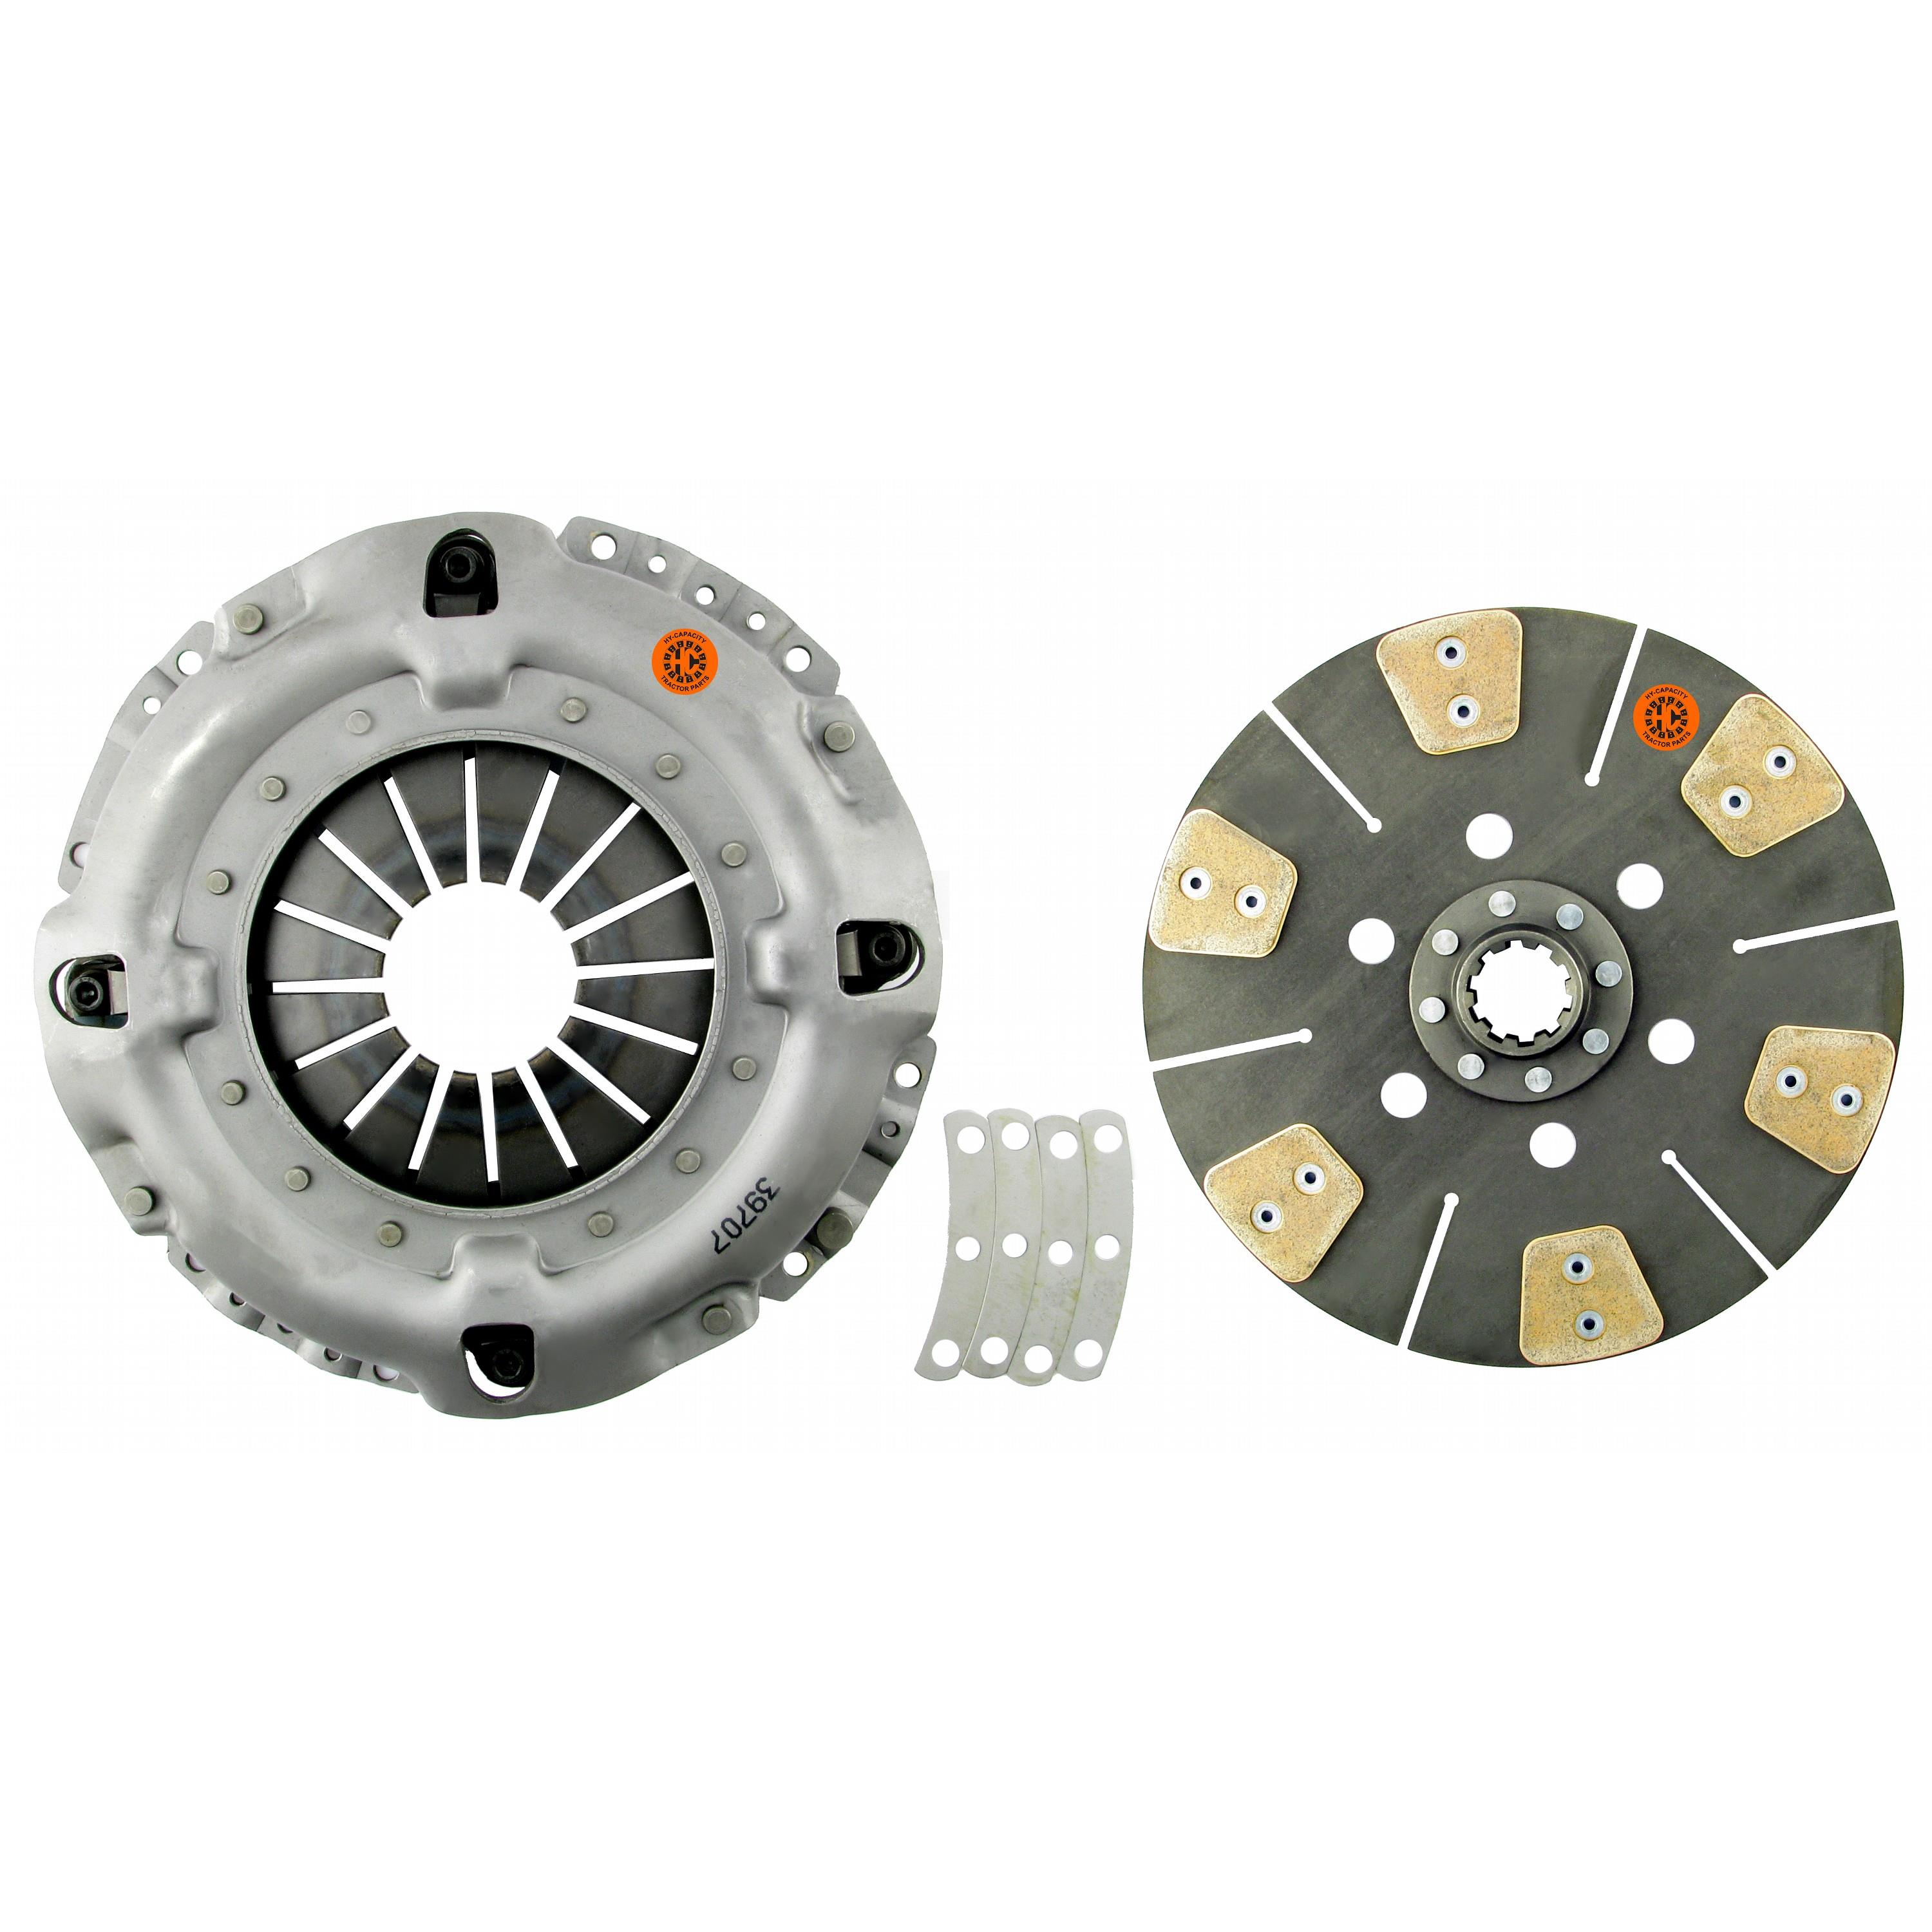 "13"" Diaphragm Clutch Unit w/ Solid Center Transmission Disc - New"